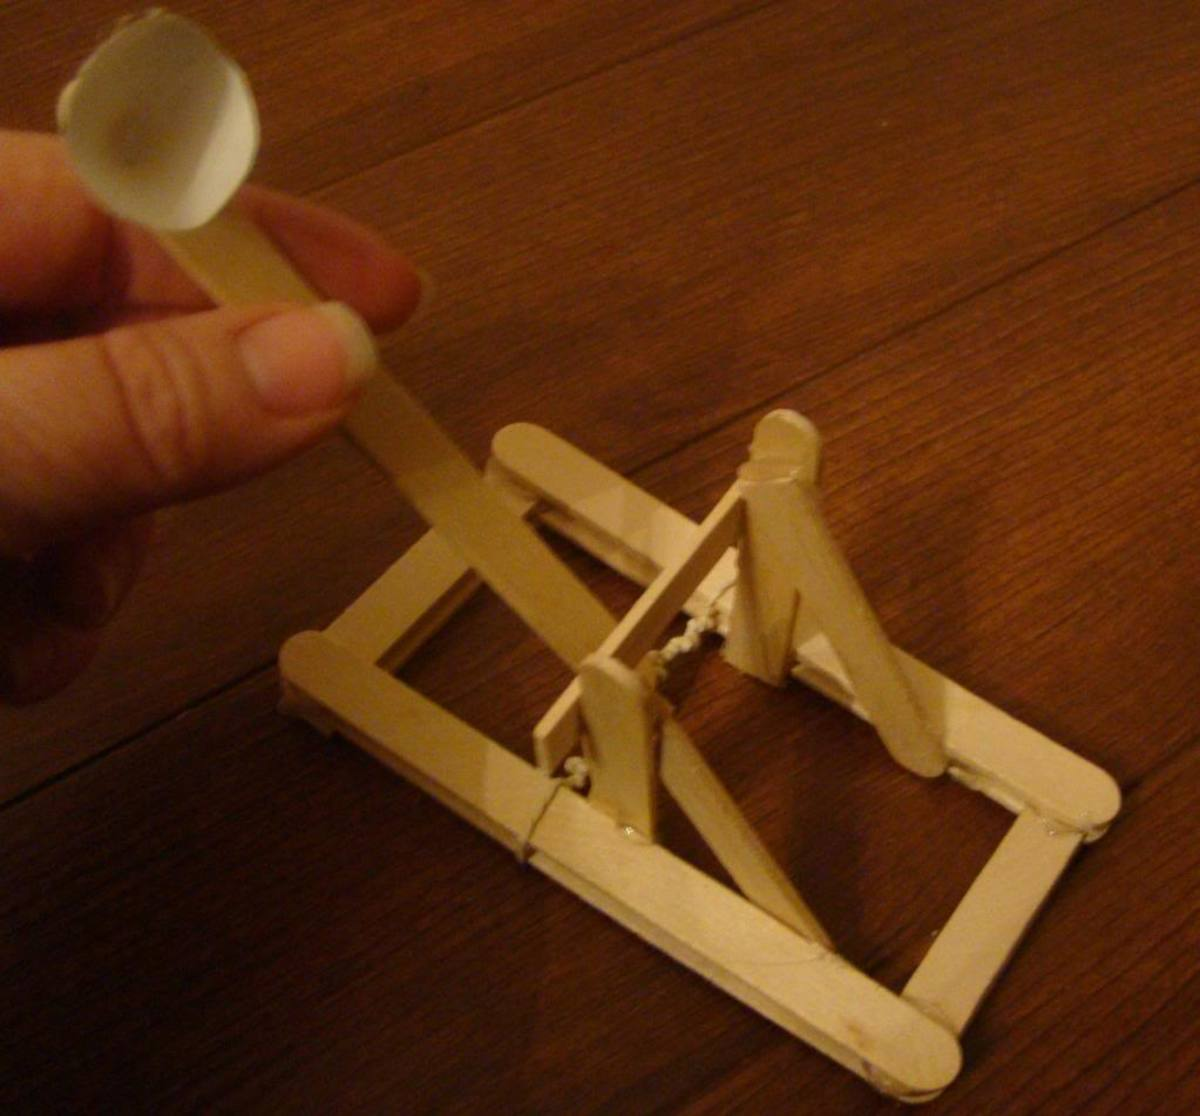 Homemade Onager catapult